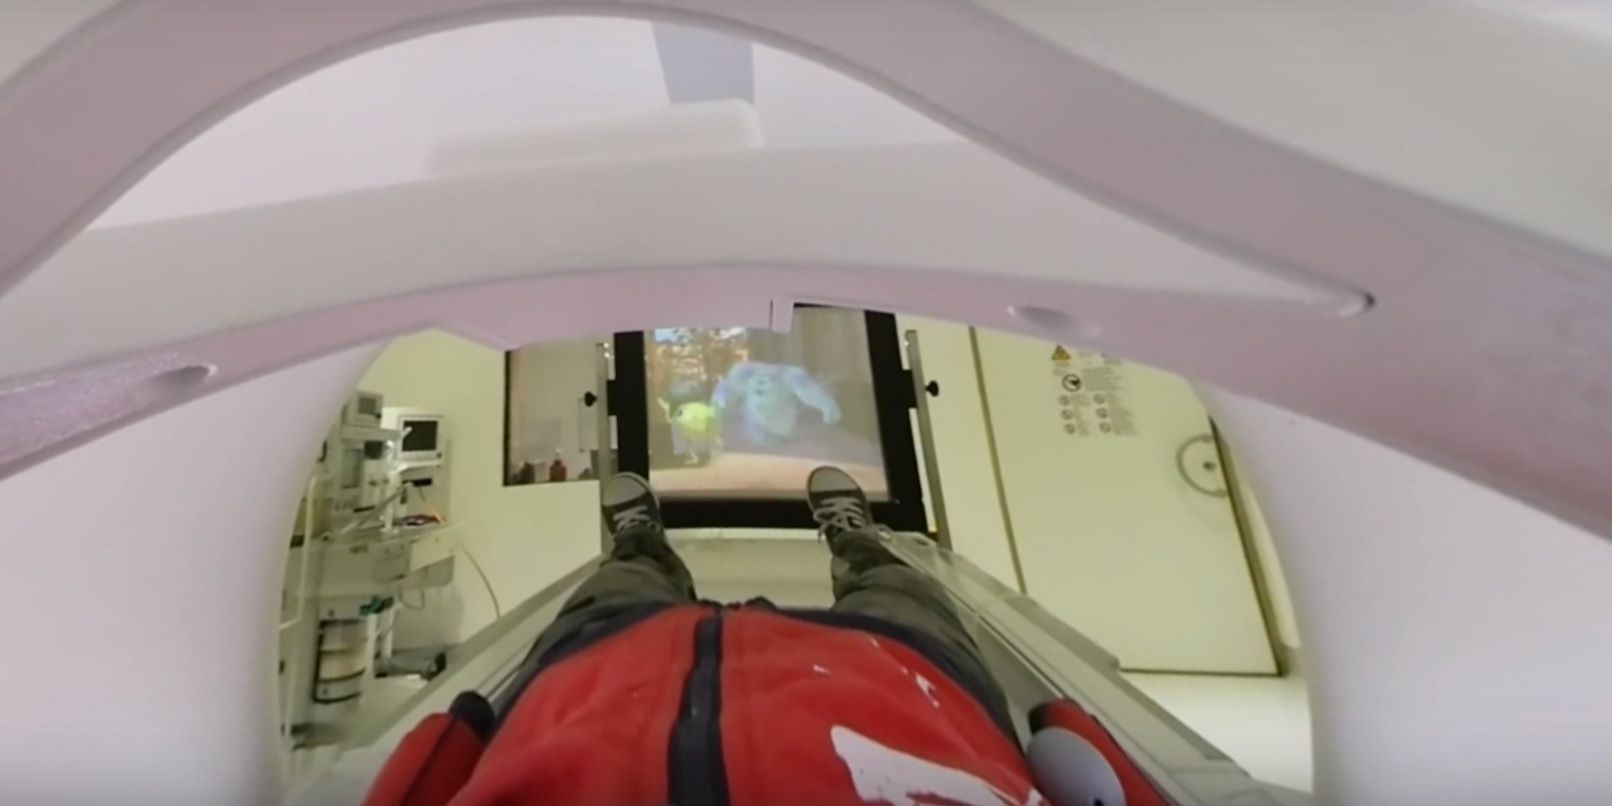 A Londonhospital is usingVR to make medical testing more comfortable for children. King's College Hospital teamed with the Google Play Specialist team to create an app that — when worn before an MRI — helps kids understand the procedure through an immersive VR experience. The app provides a 360-degree view of the process while a …